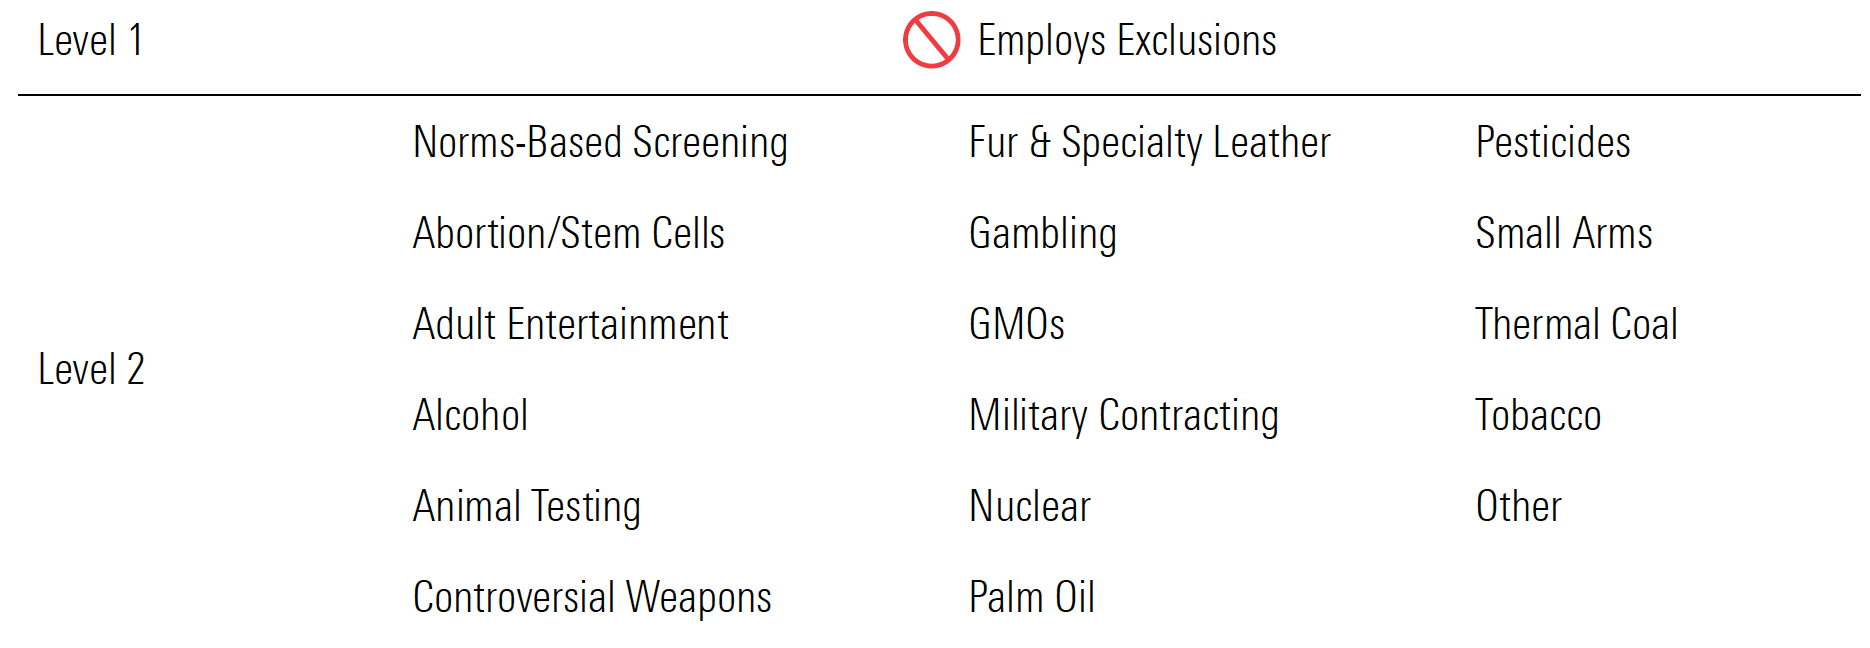 Exclusionary Attributes: Controversial Products & Industries